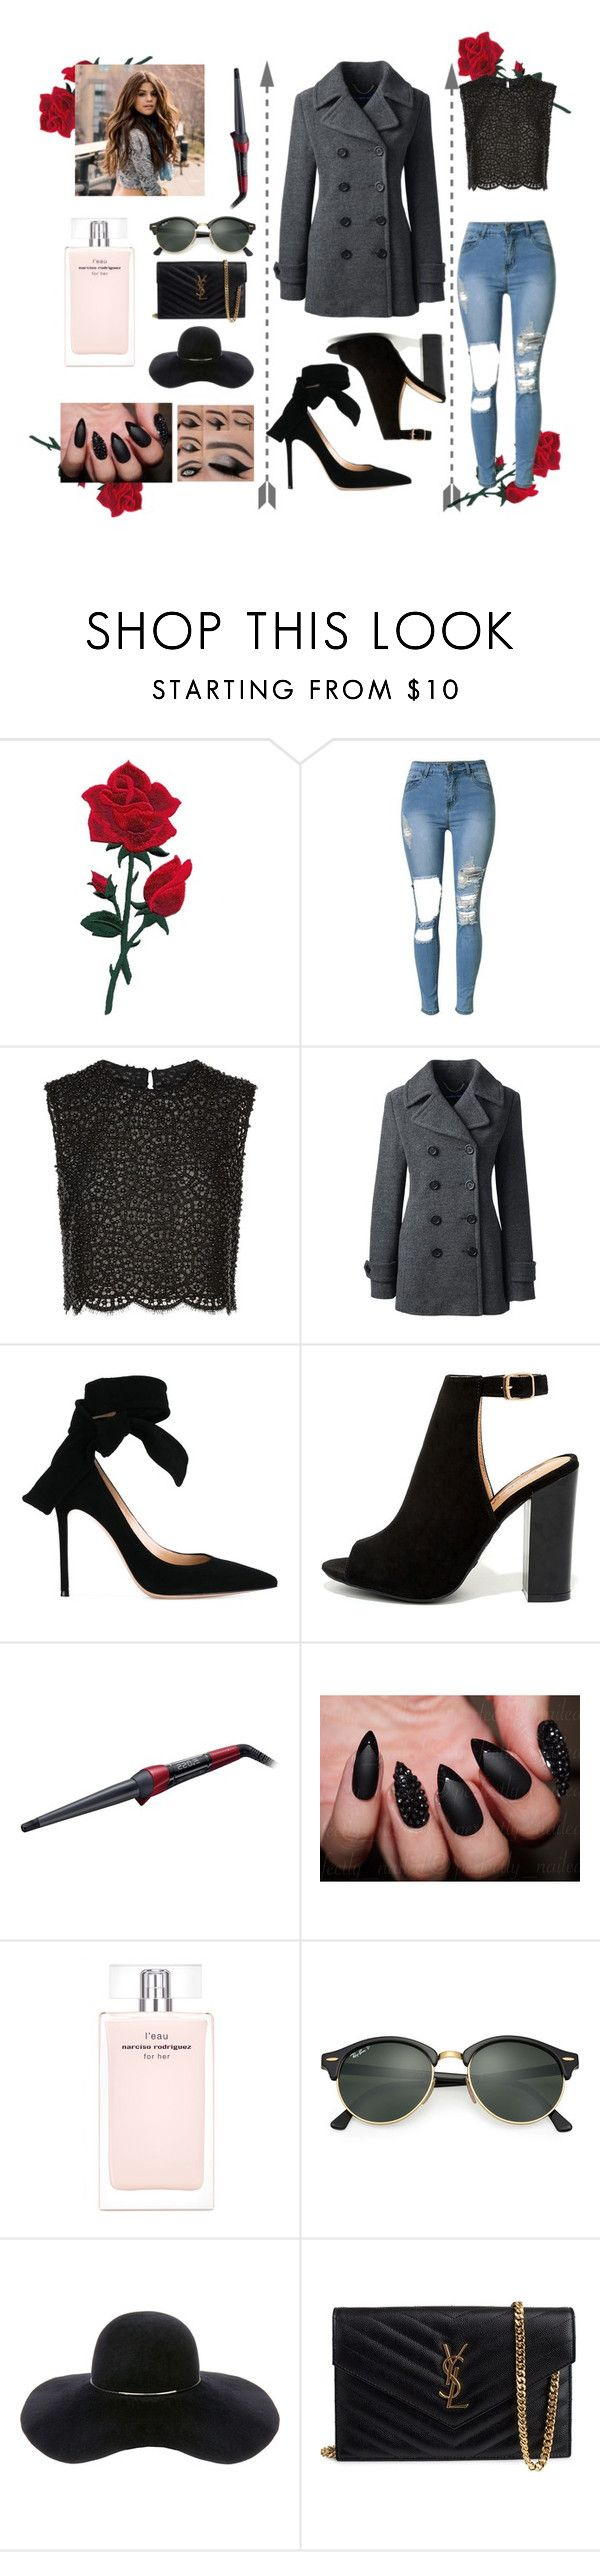 """""""Surprise Date"""" by haileywilkins1 ❤ liked on Polyvore featuring Costarellos, Lands' End, Gianvito Rossi, Bamboo, Remington, Narciso Rodriguez, Ray-Ban, Eugenia Kim and Yves Saint Laurent"""